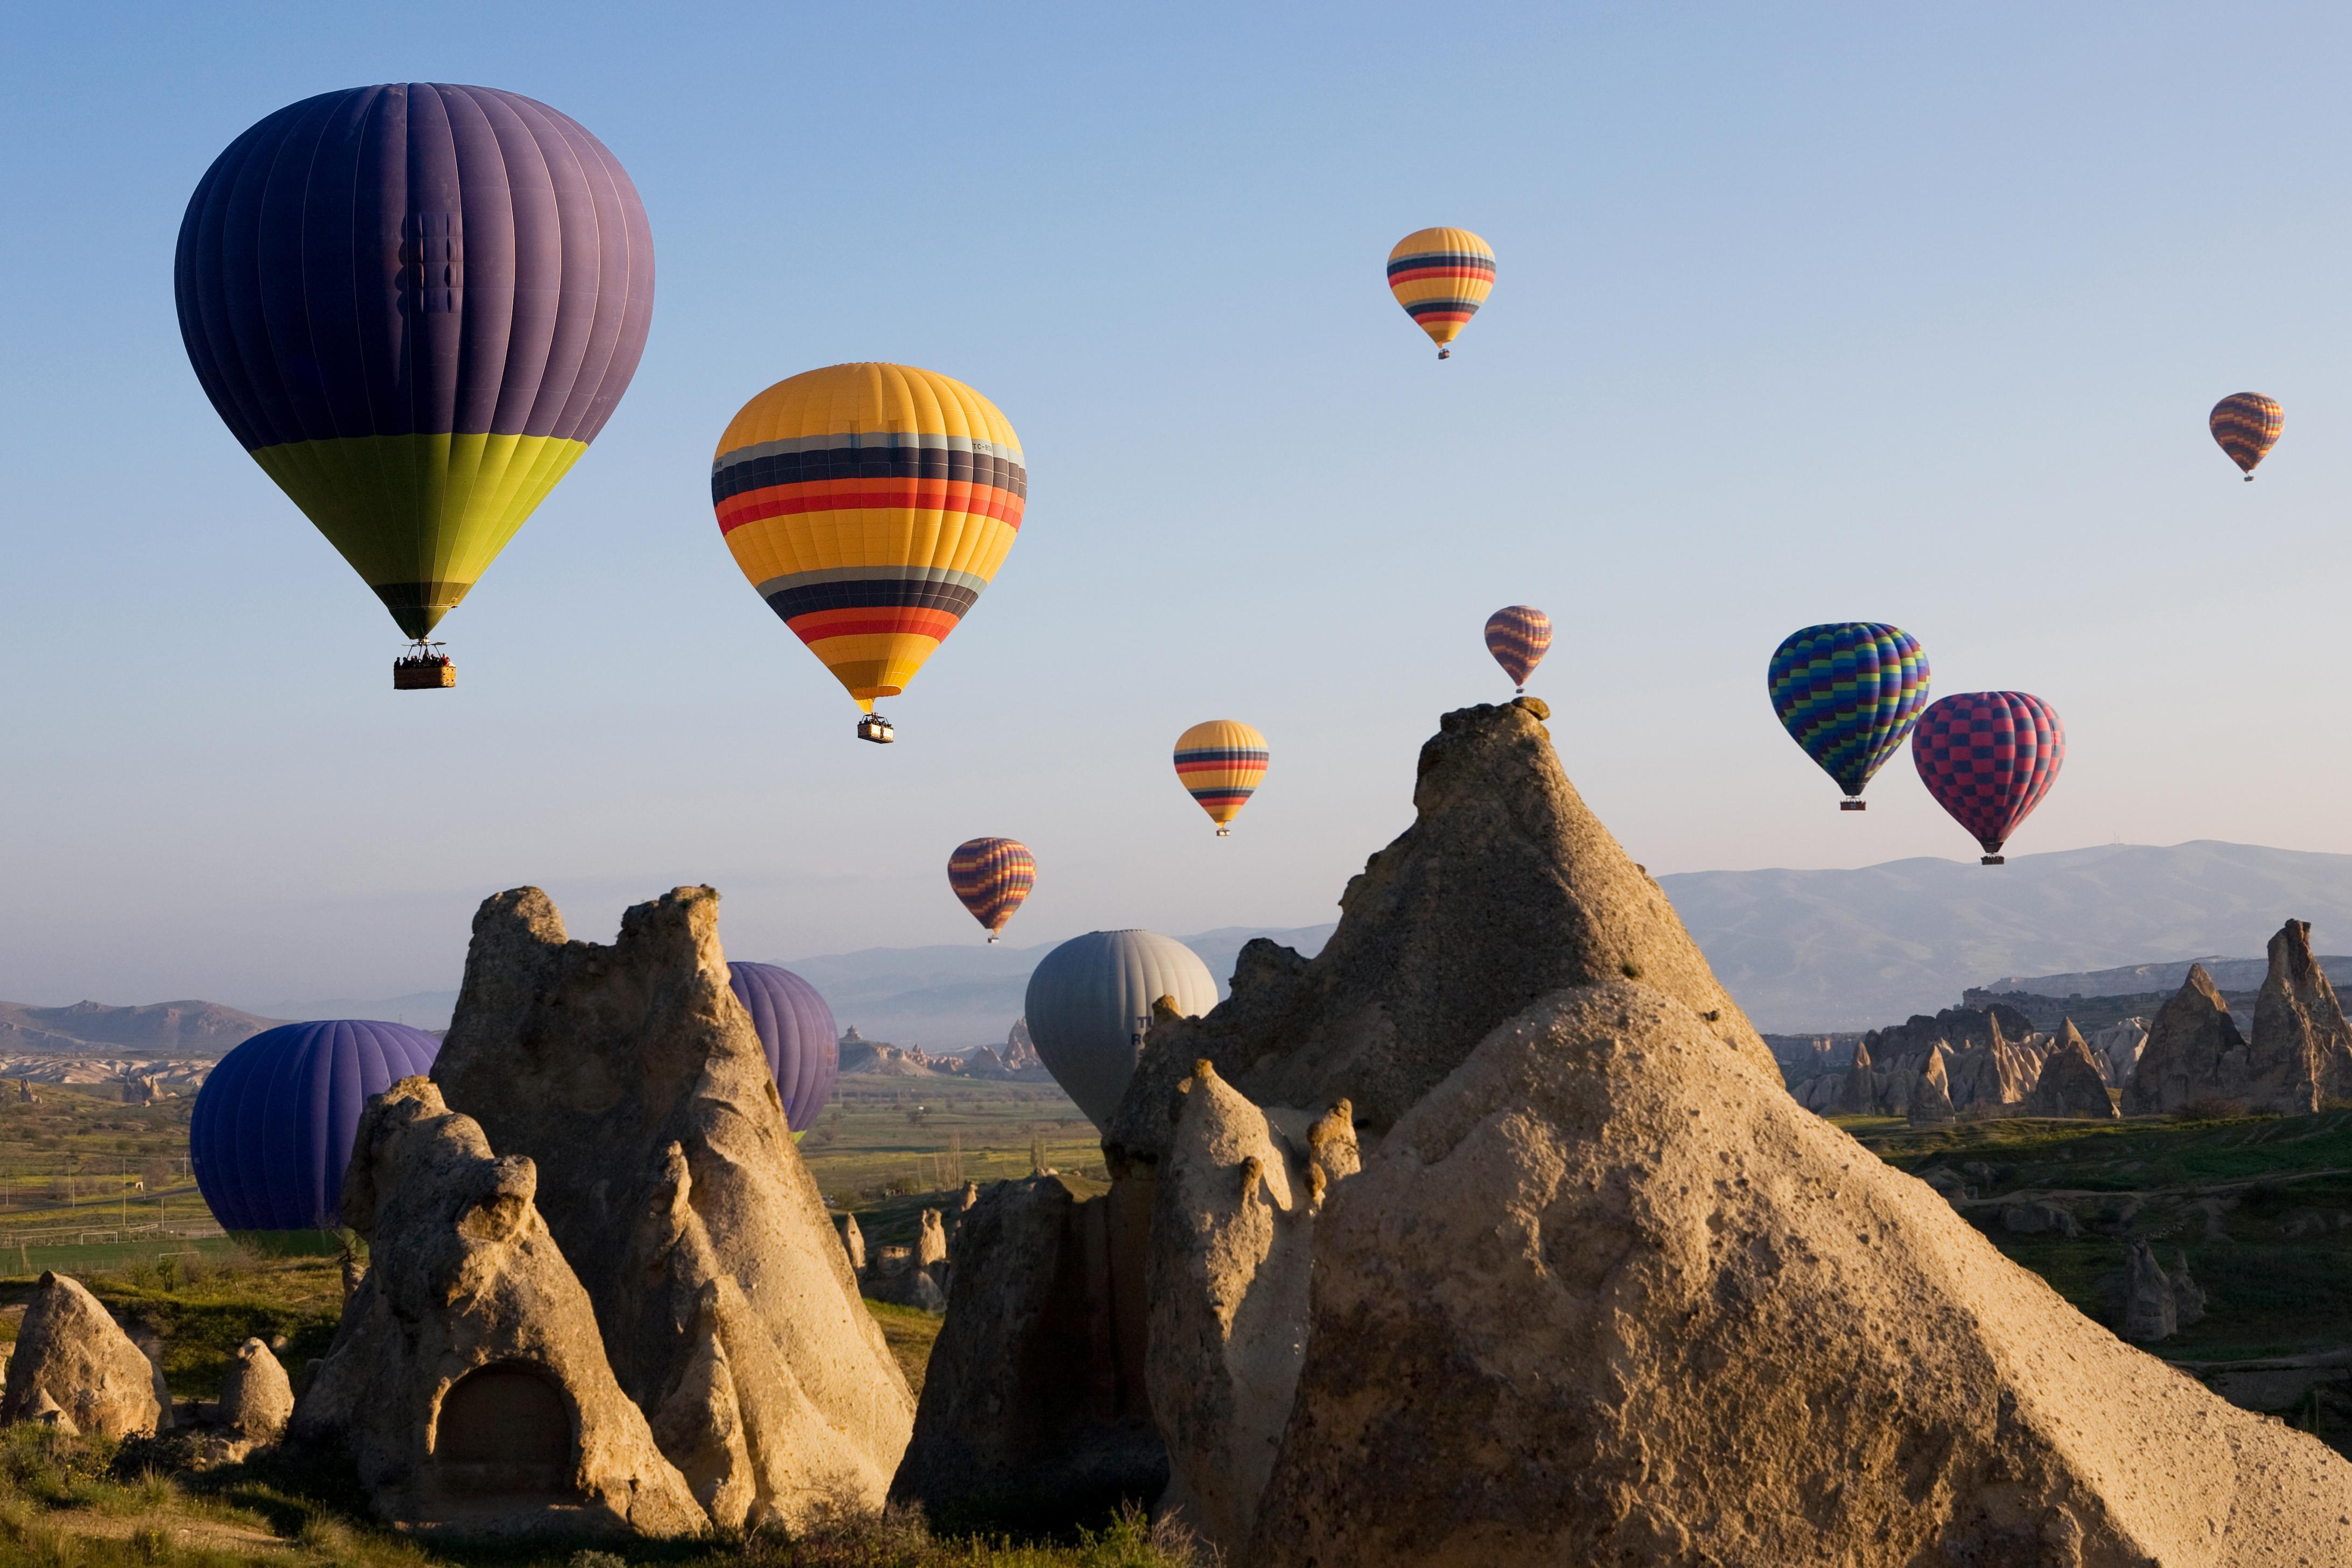 How to Spend 1 Day in Cappadocia